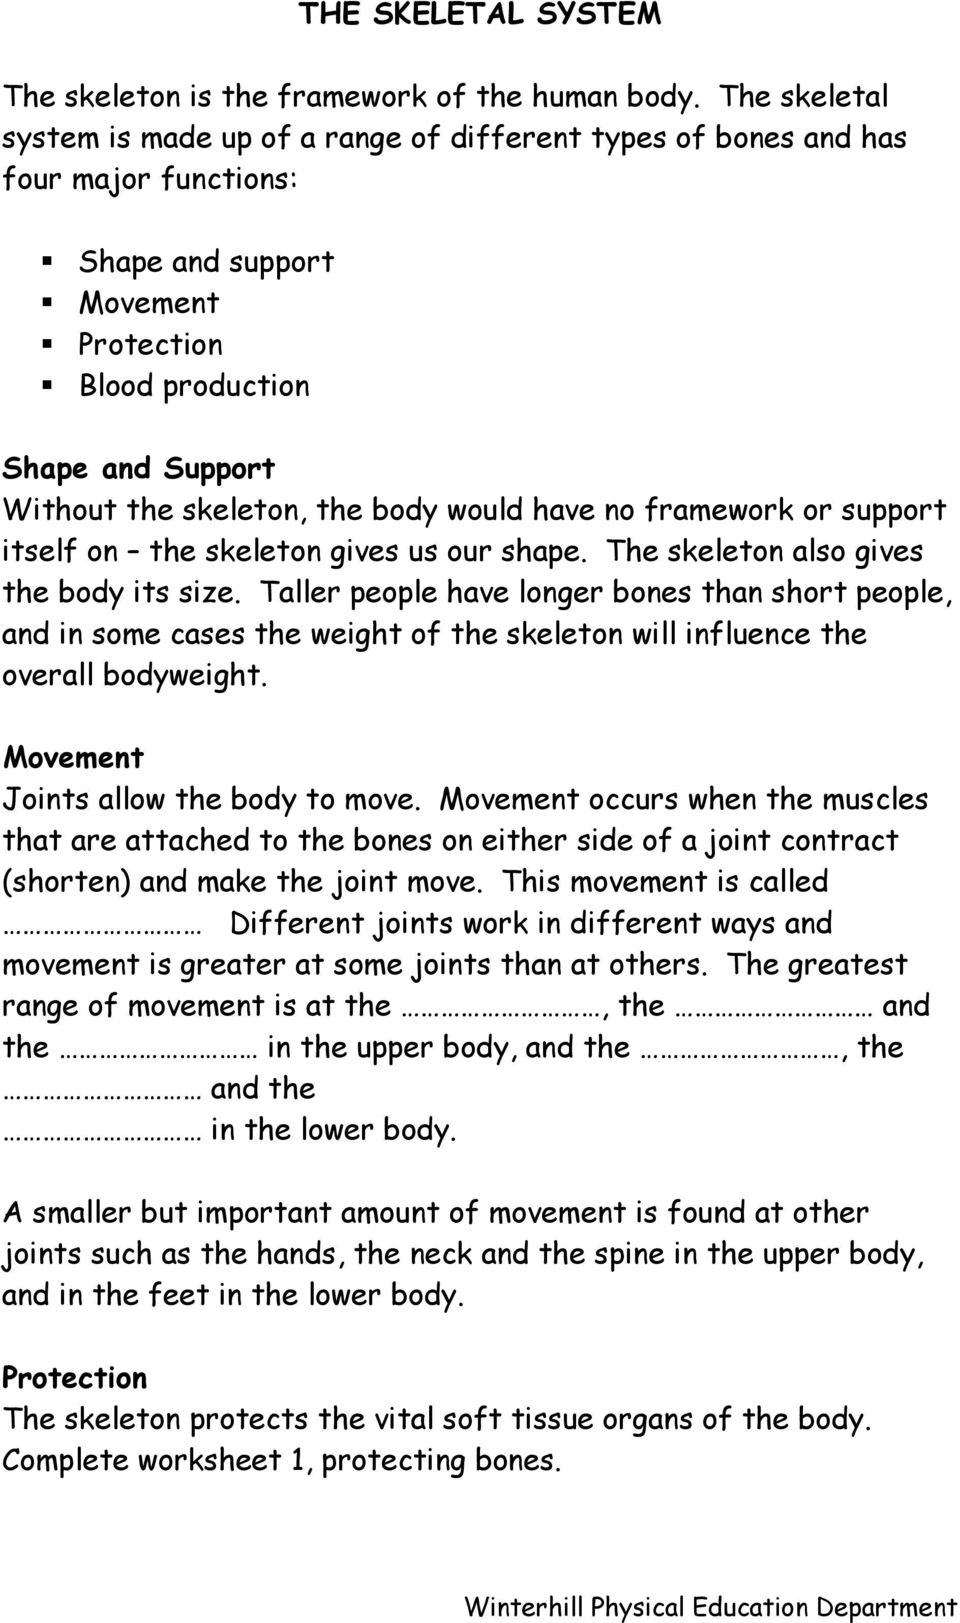 Worksheets Joints And Movement Worksheet skeleton and joints g c s e physical education unit 1 factors body would have no framework or support itself on the gives us our shape